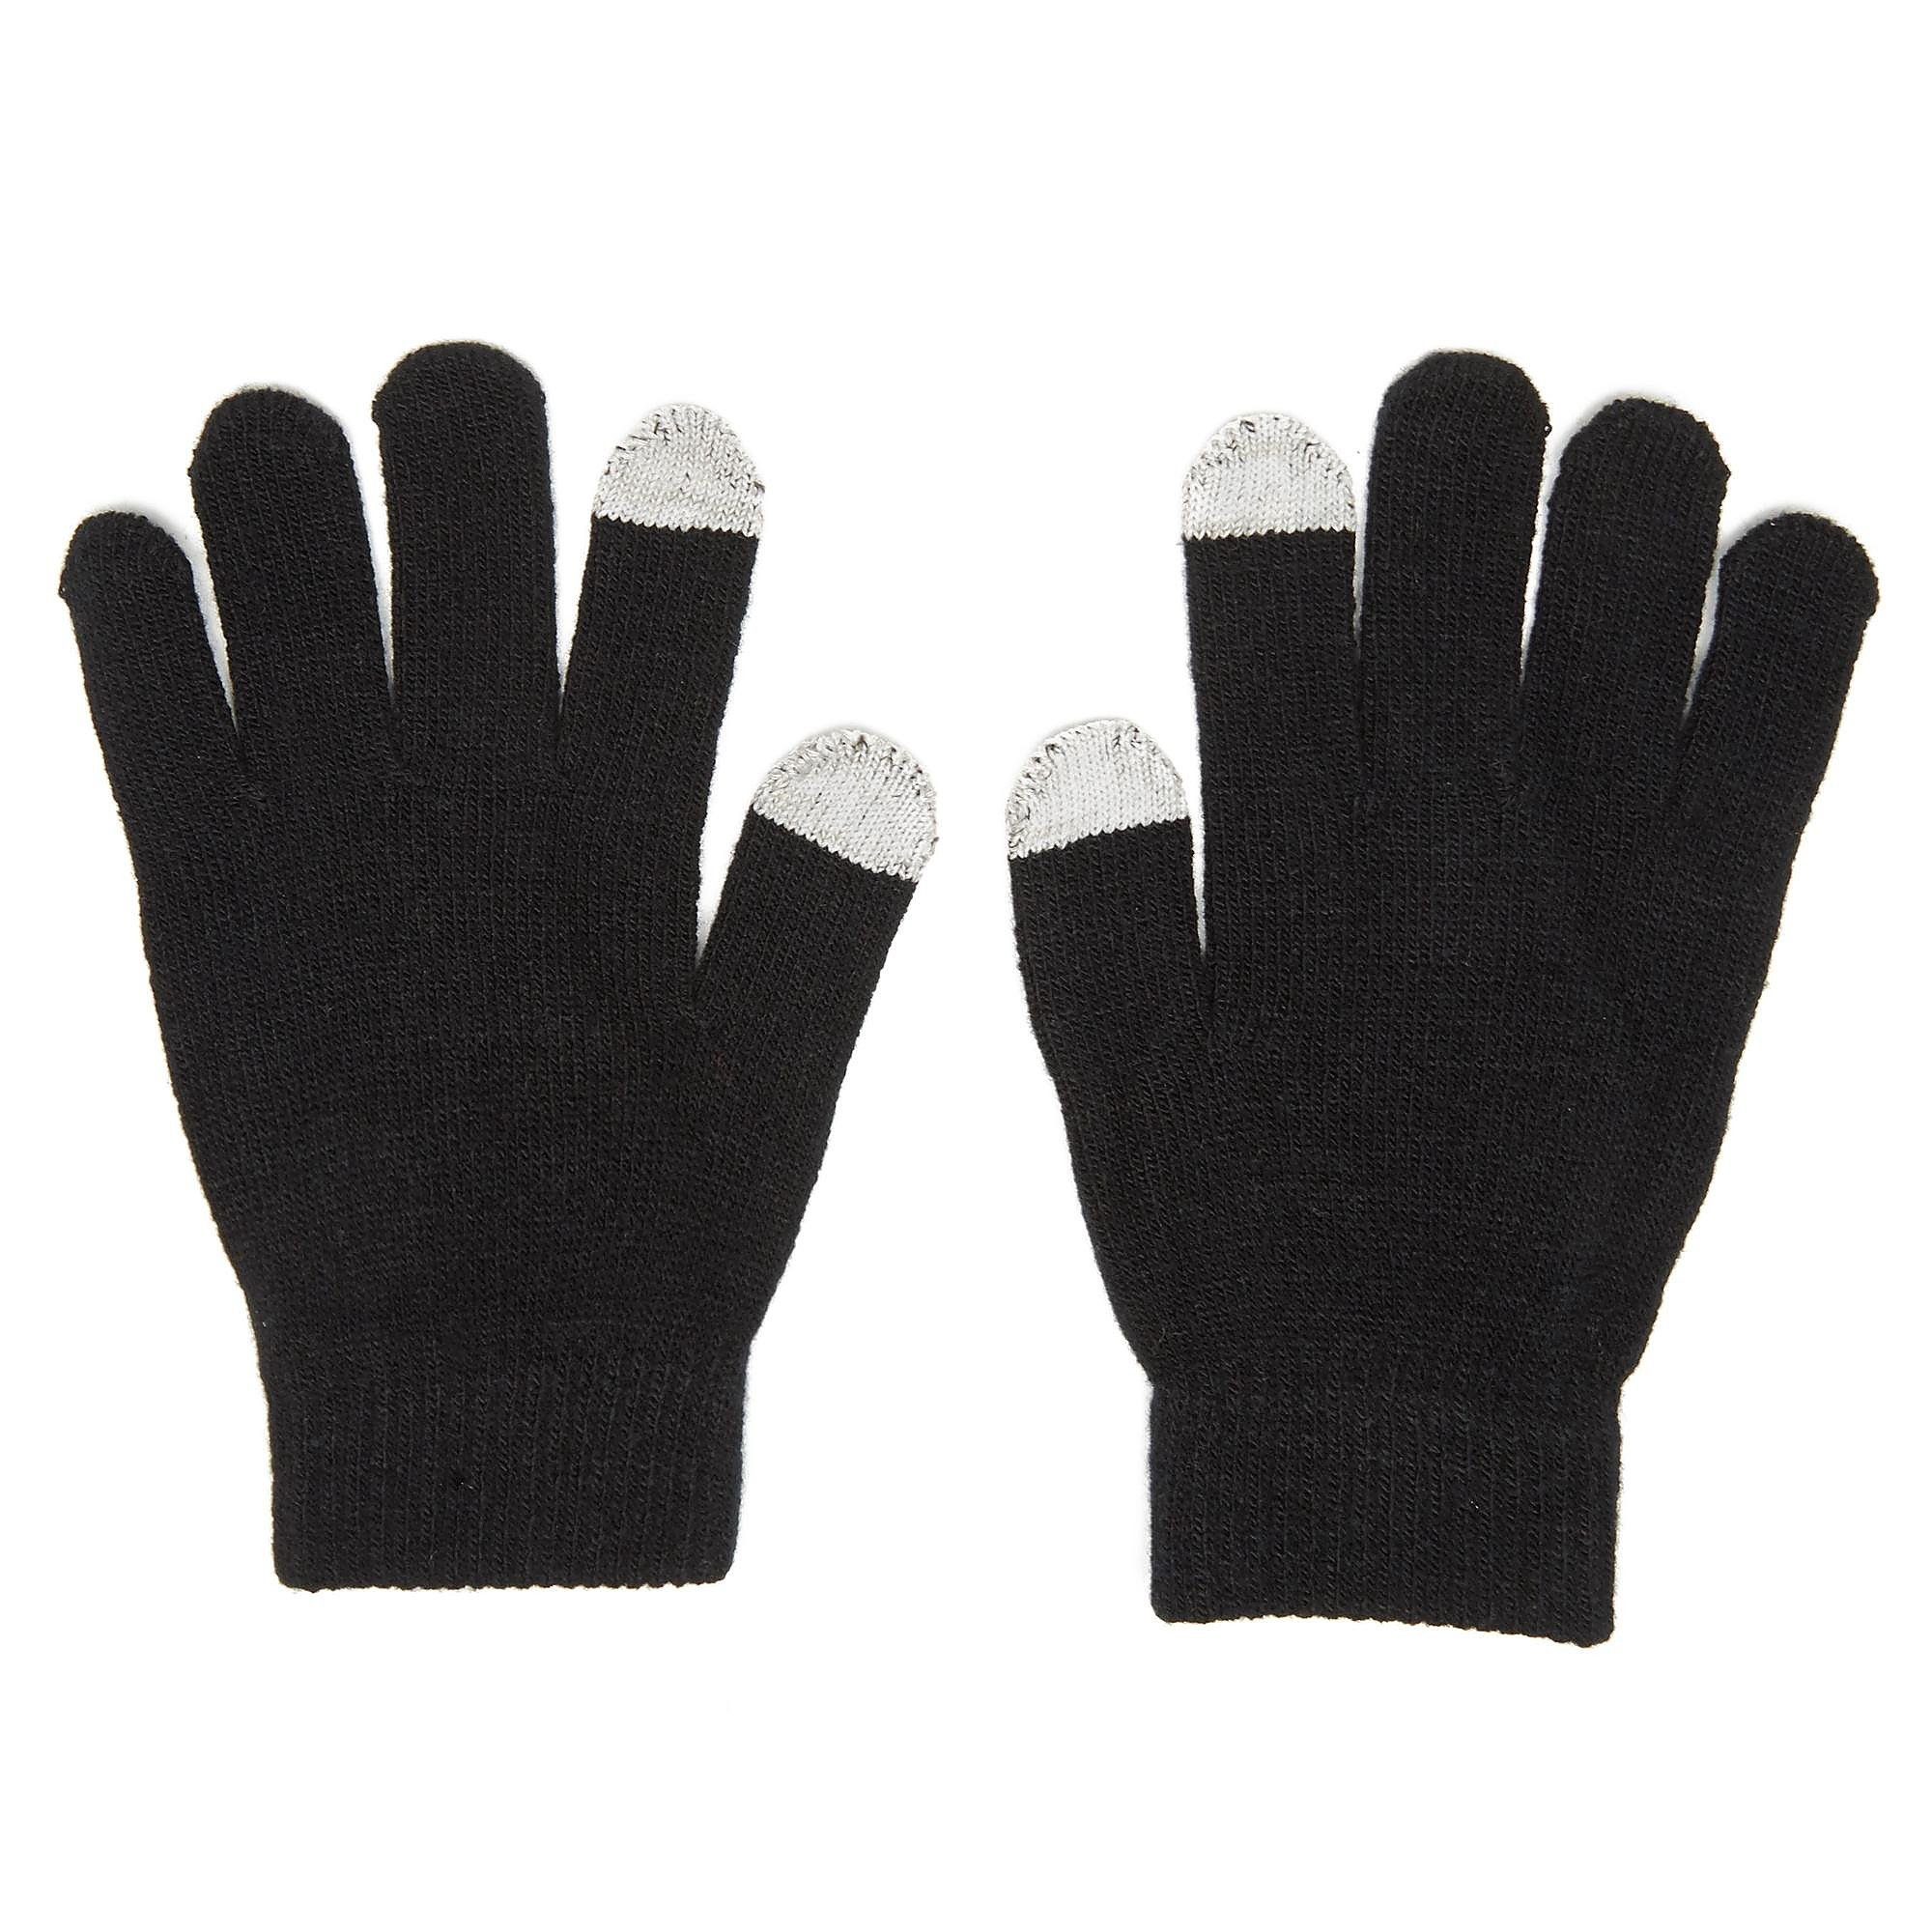 PETER STORM Gripper Gloves